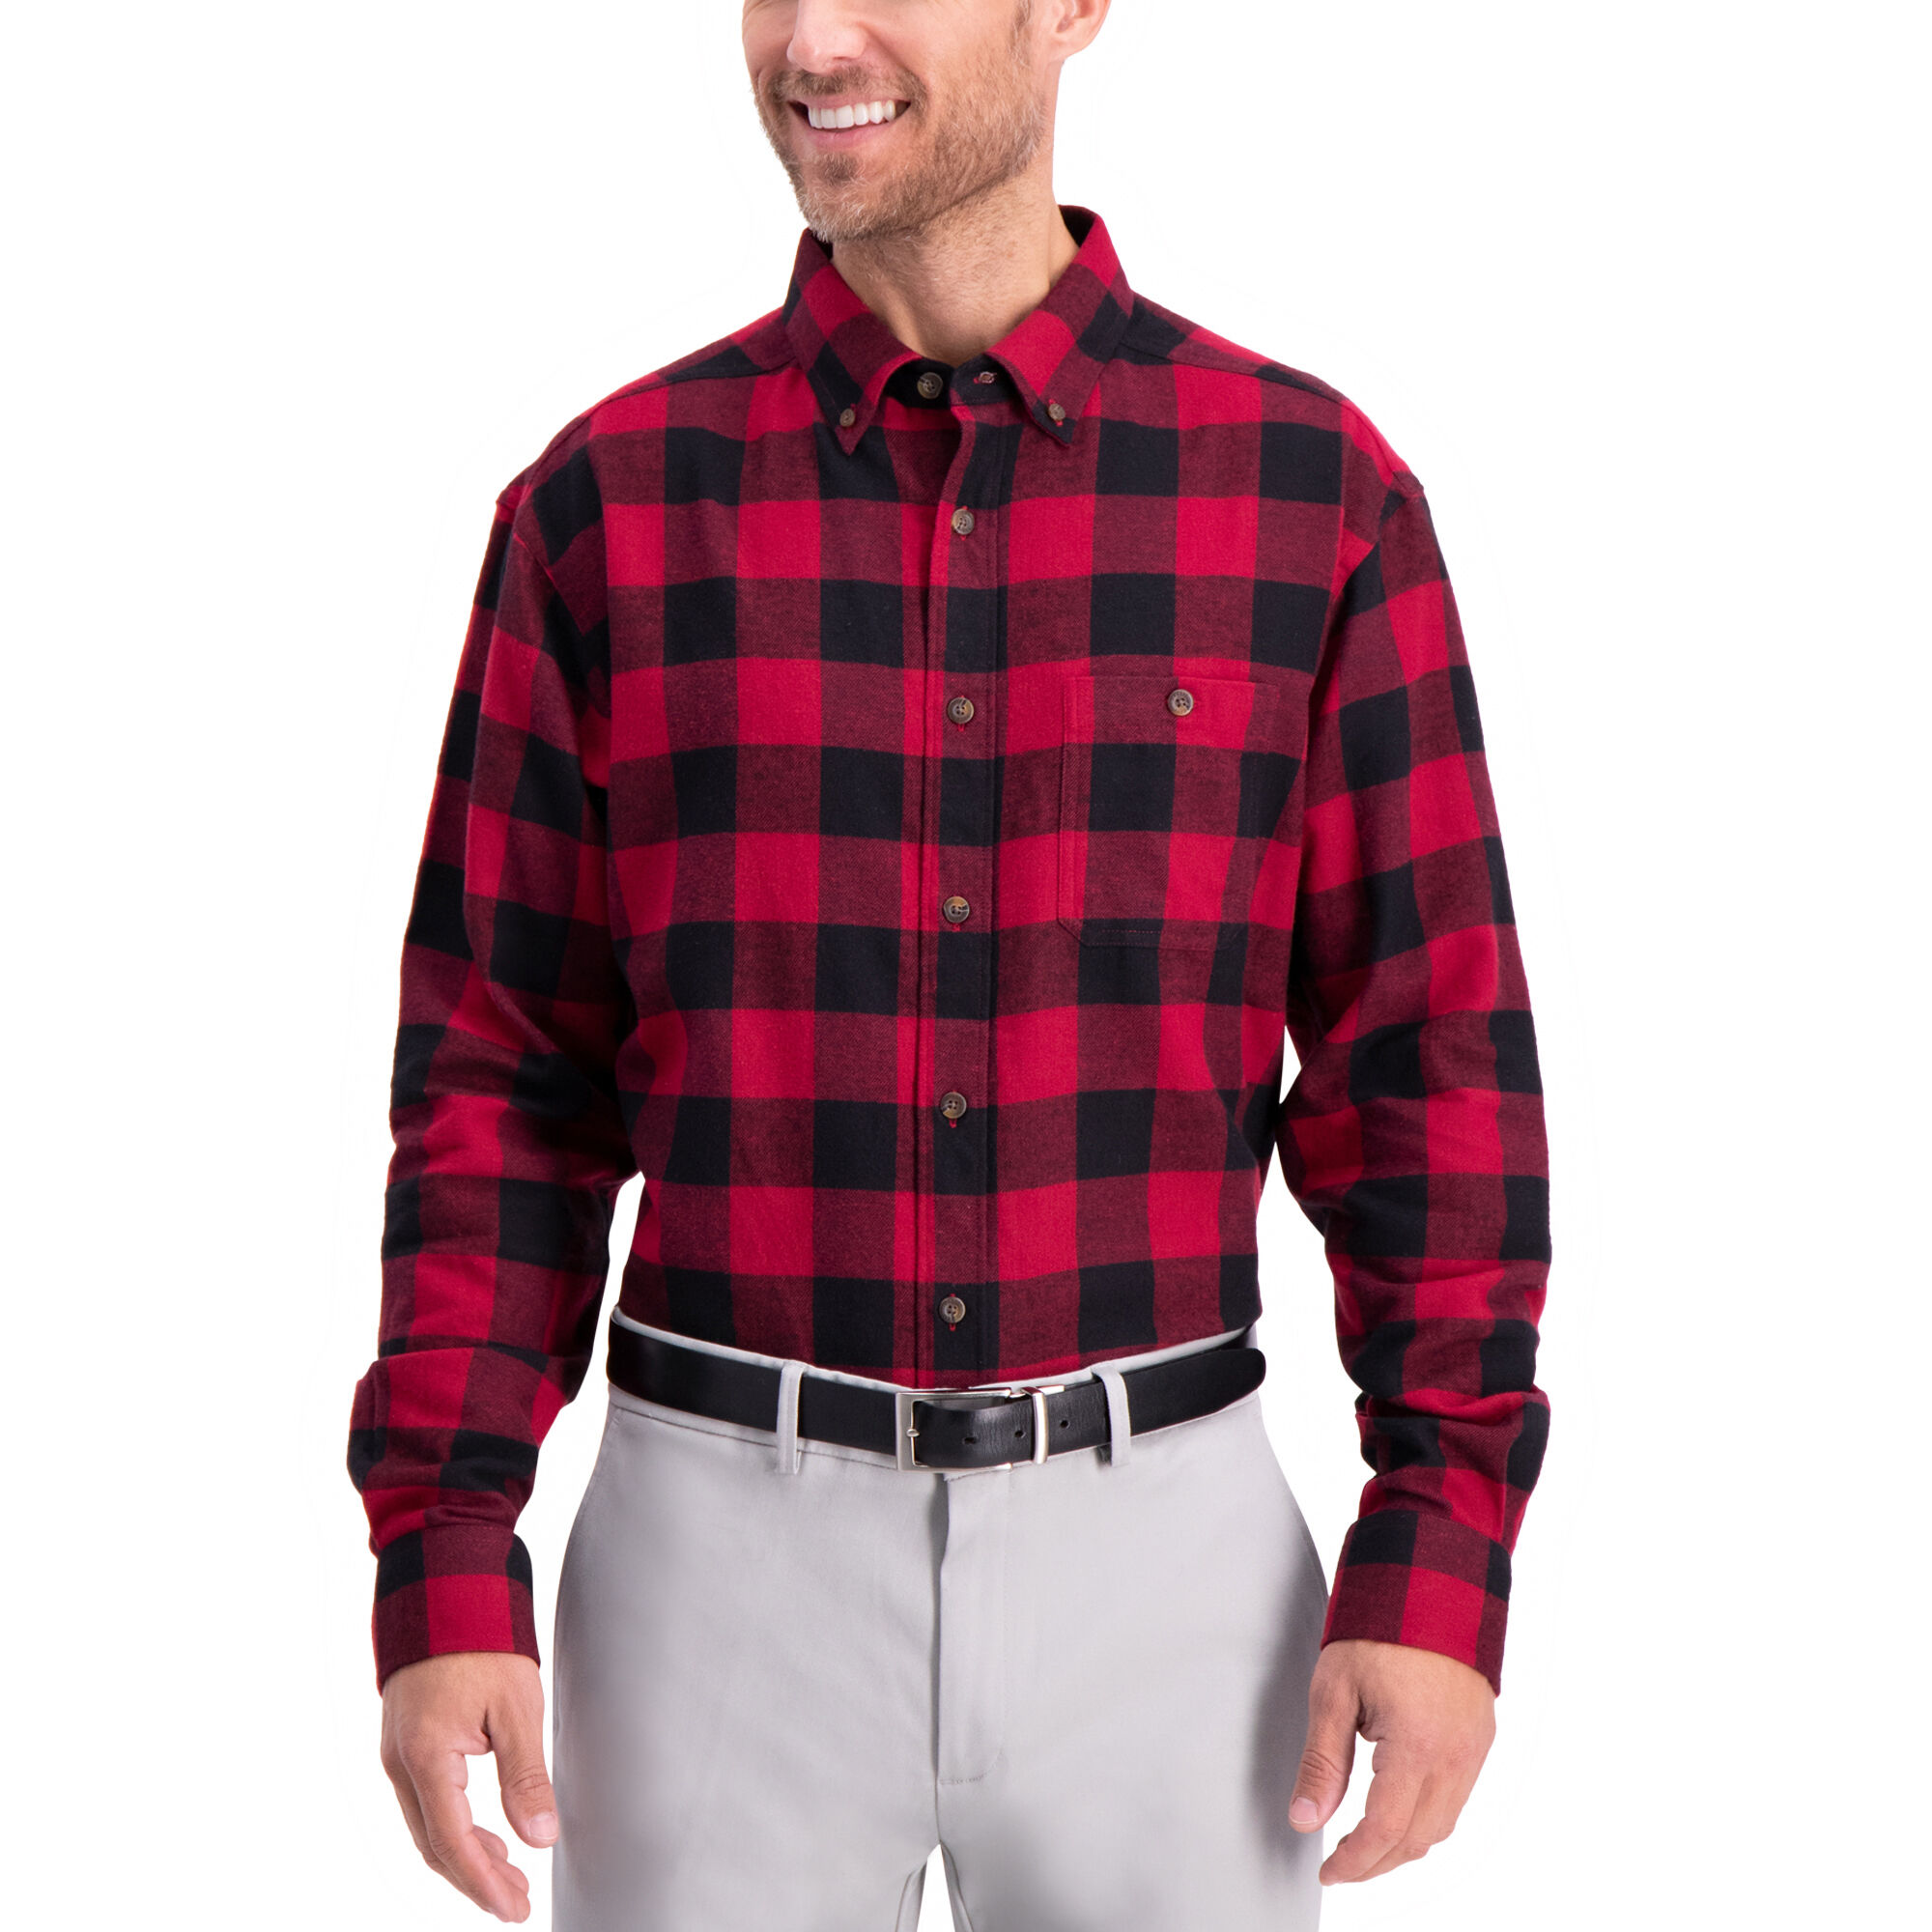 d64ef657 Buffalo Plaid Shirt,